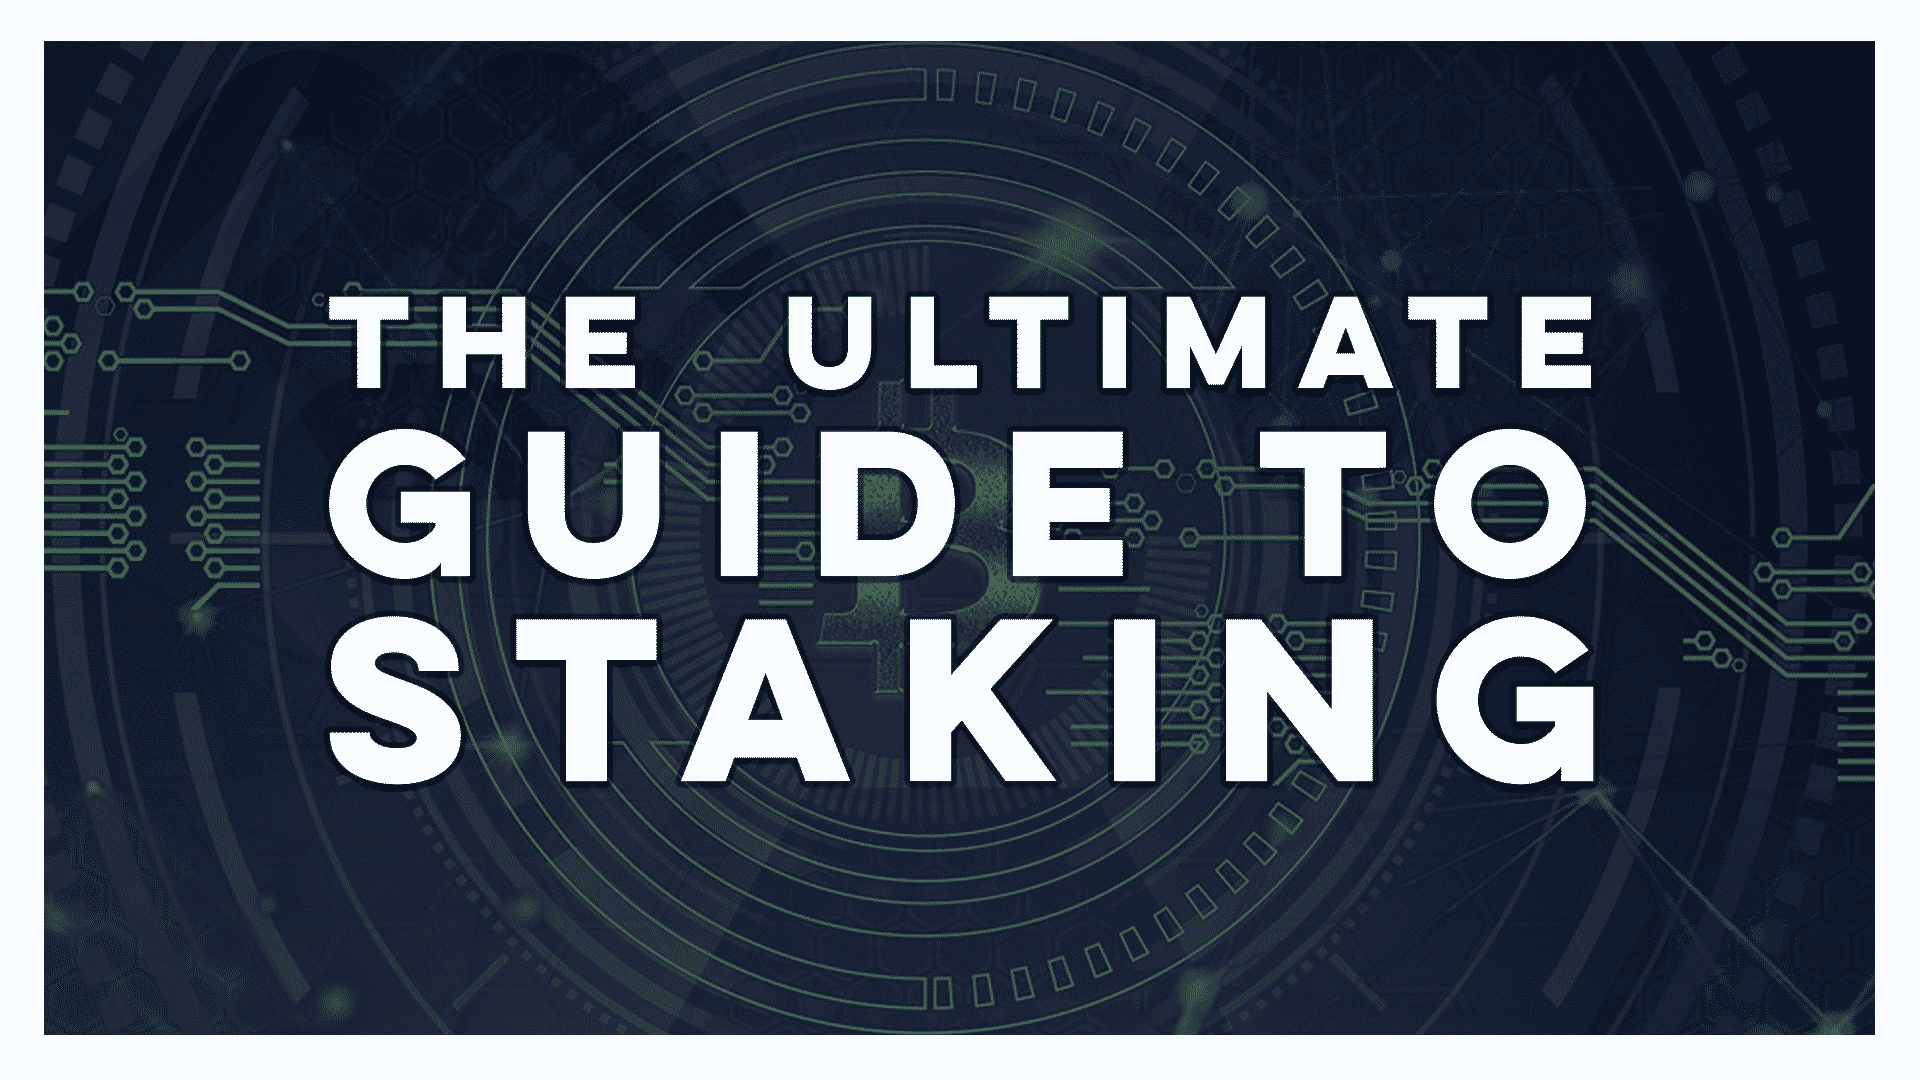 The Ultimate Guide to staking